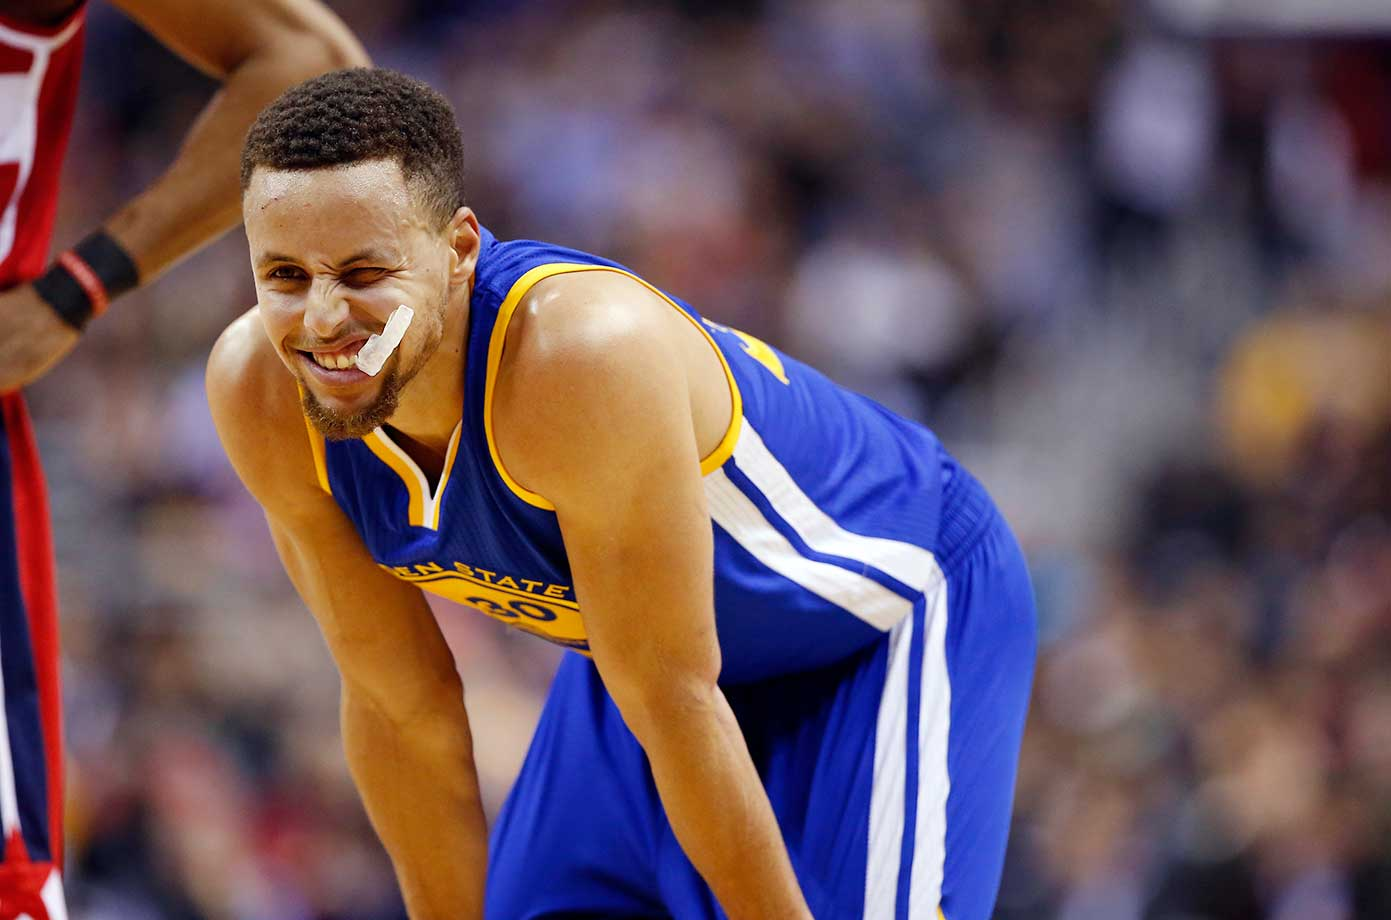 Golden State Warriors guard Stephen Curry winks at a fan in Washington. Curry scored 51 points with 11 three-pointers.